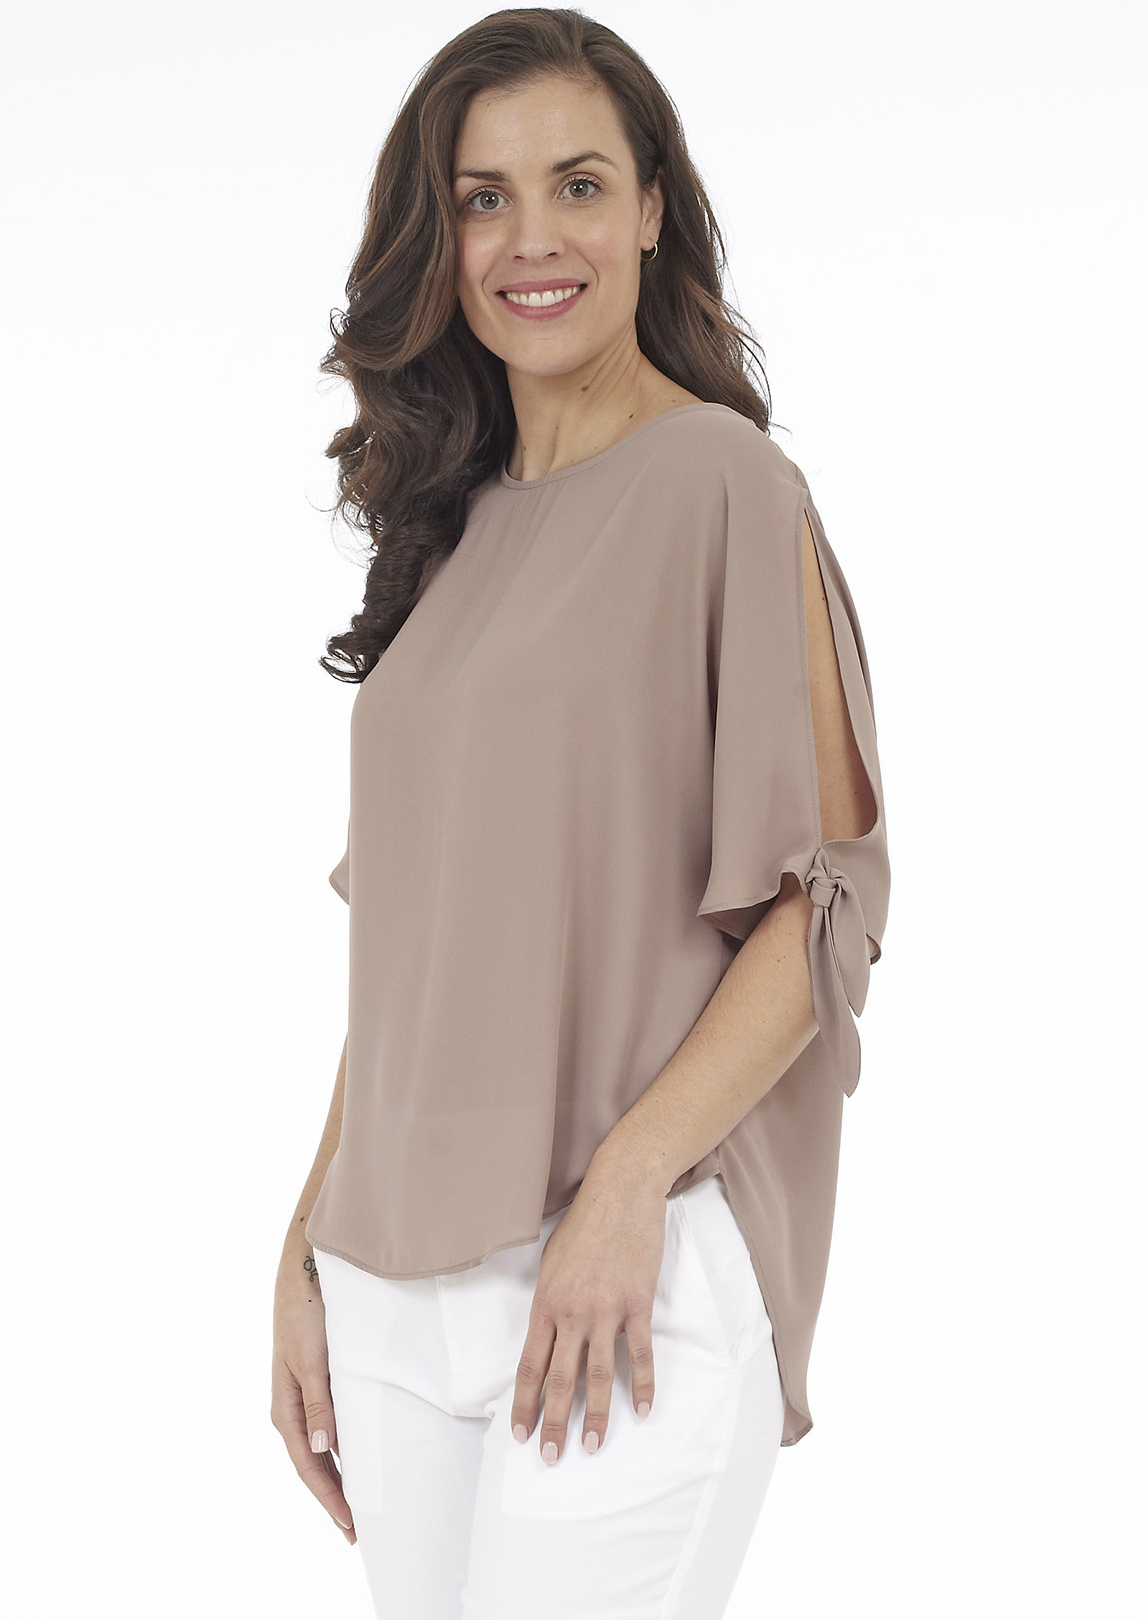 Scoop Front and Back Blouses with Sleeve Tie